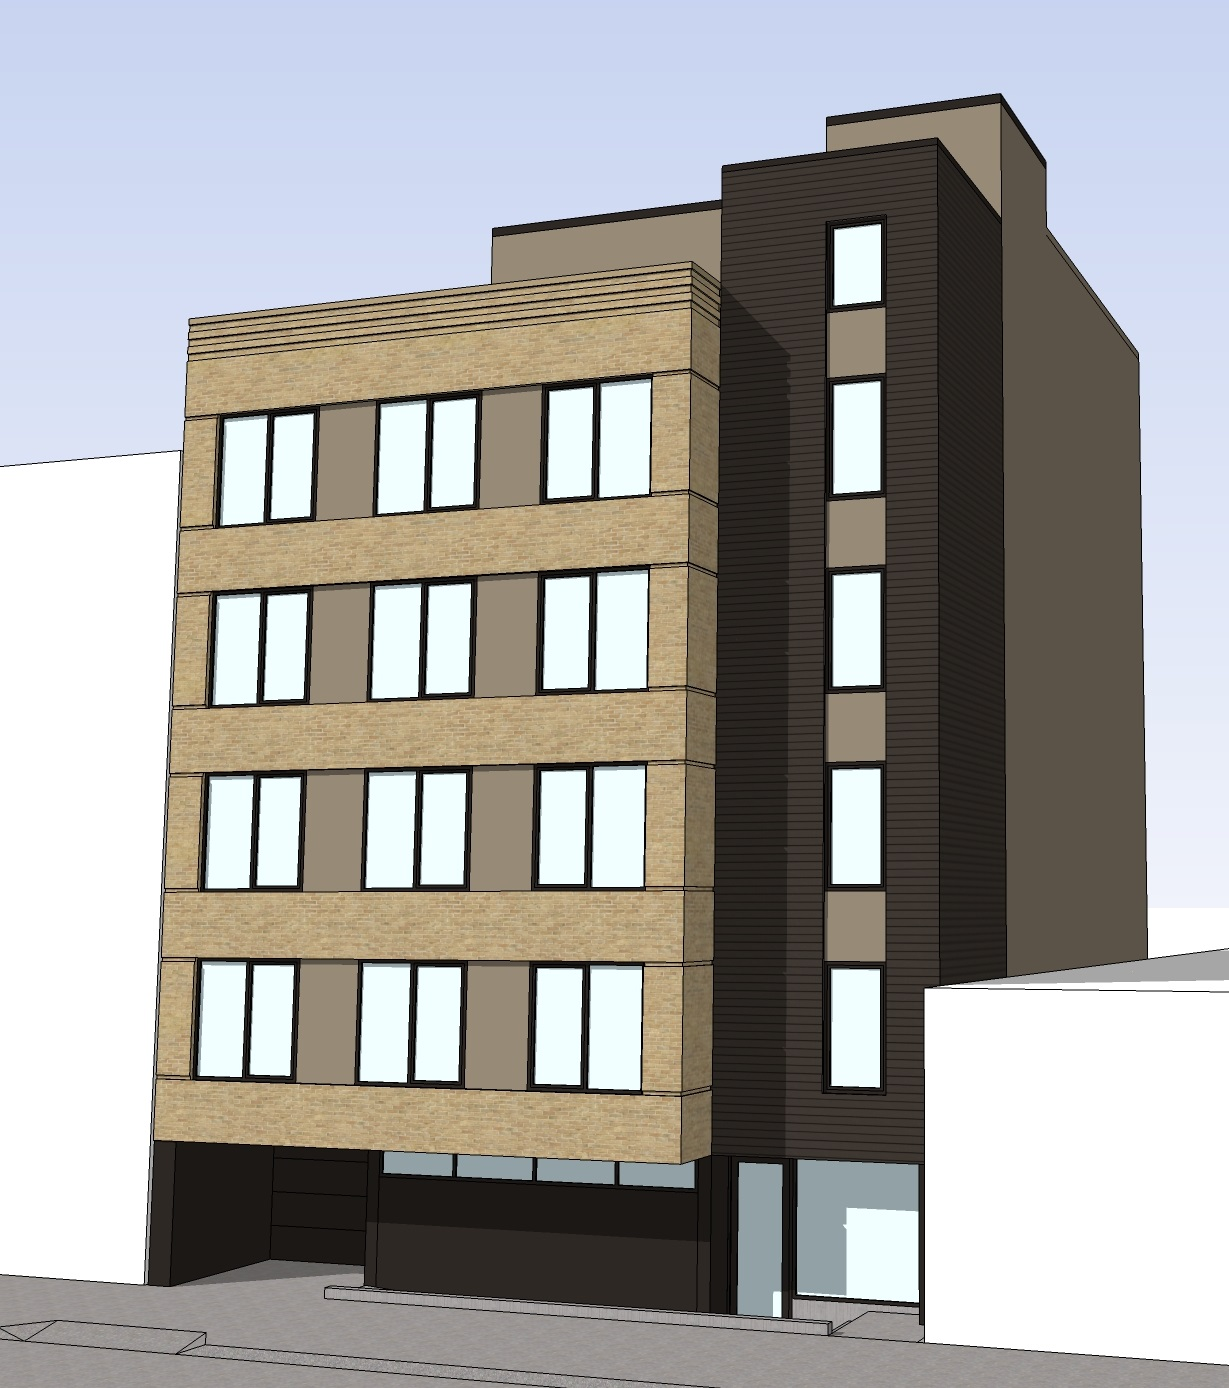 359 Linden Street, rendering by Boro Architects